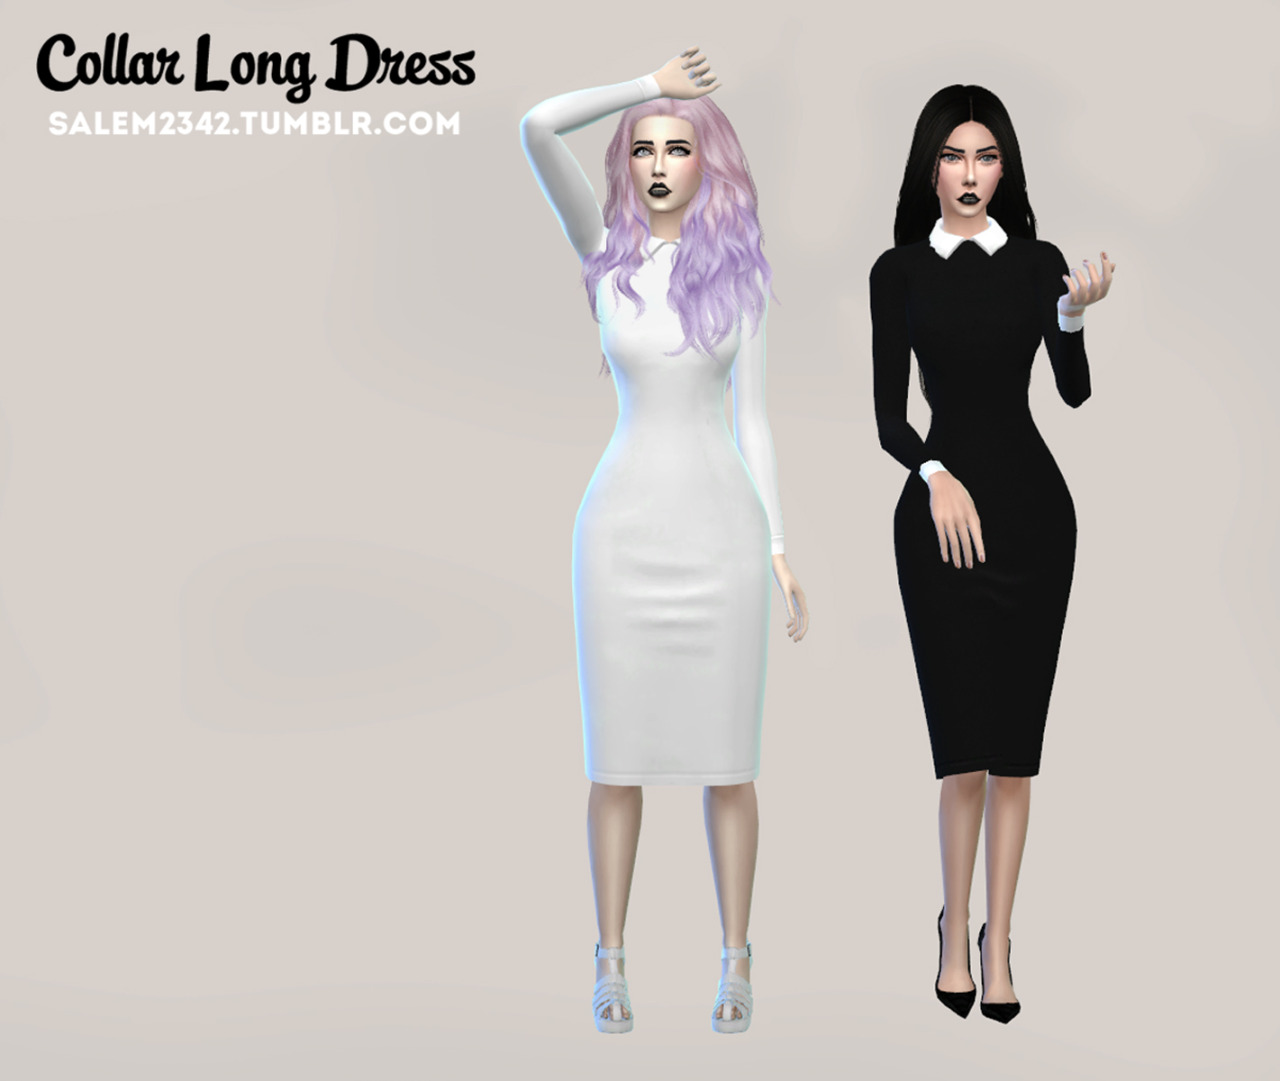 Collar Long Dress by Salem2342